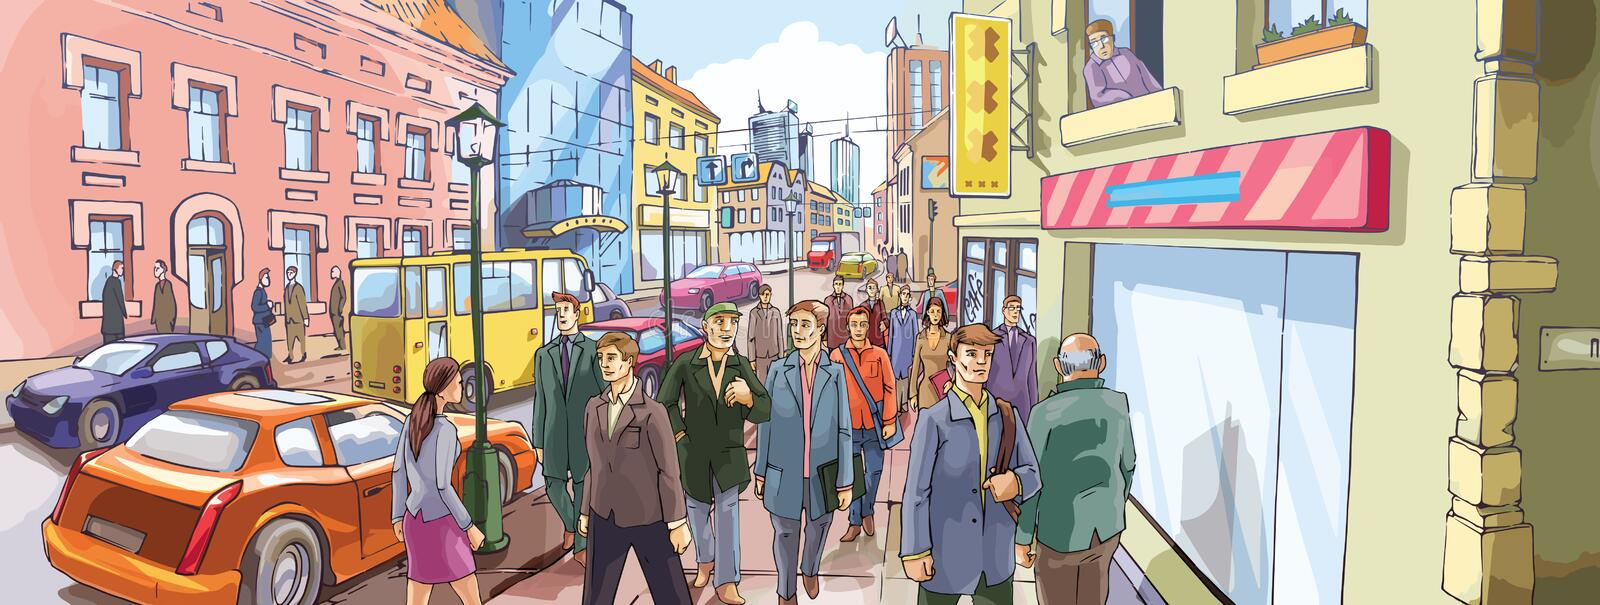 Street Crowd. People are going along the crowded city street. - This image is the 100% editable vector. - Includes: the Illustrator v.10 vector EPS file and the royalty free illustration